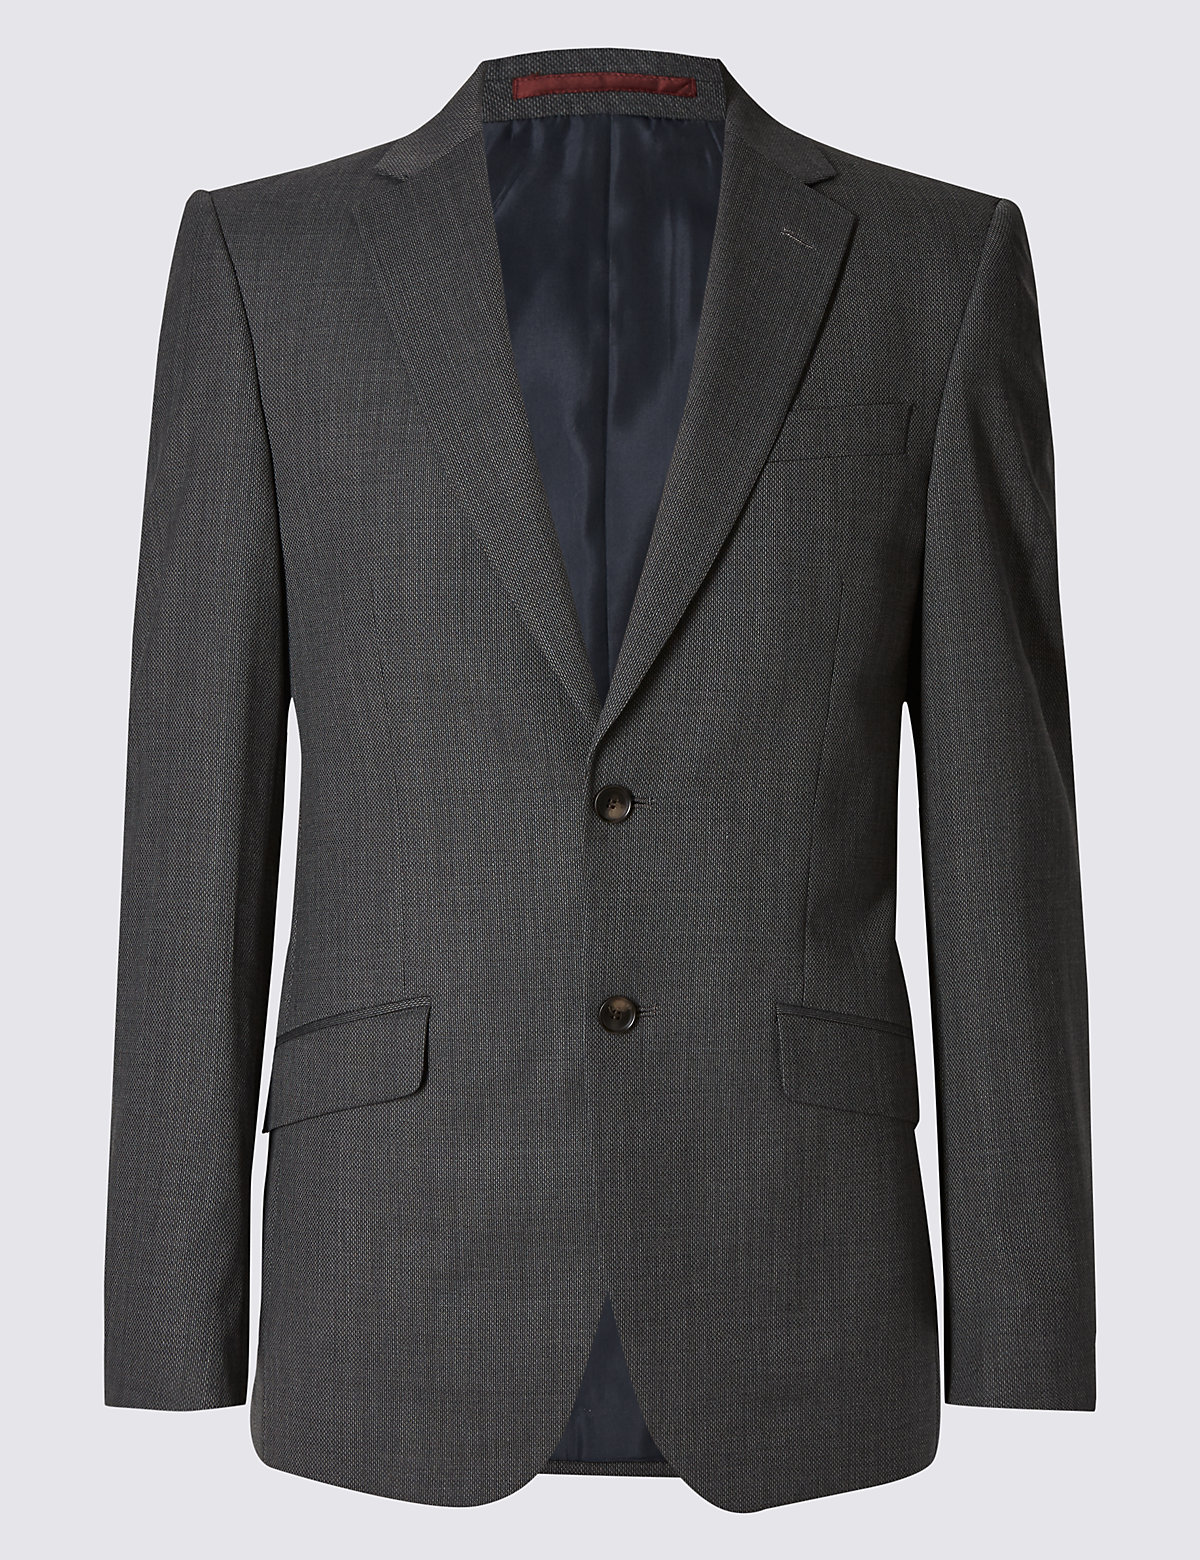 Marks & Spencer Grey Textured Slim Fit Jacket